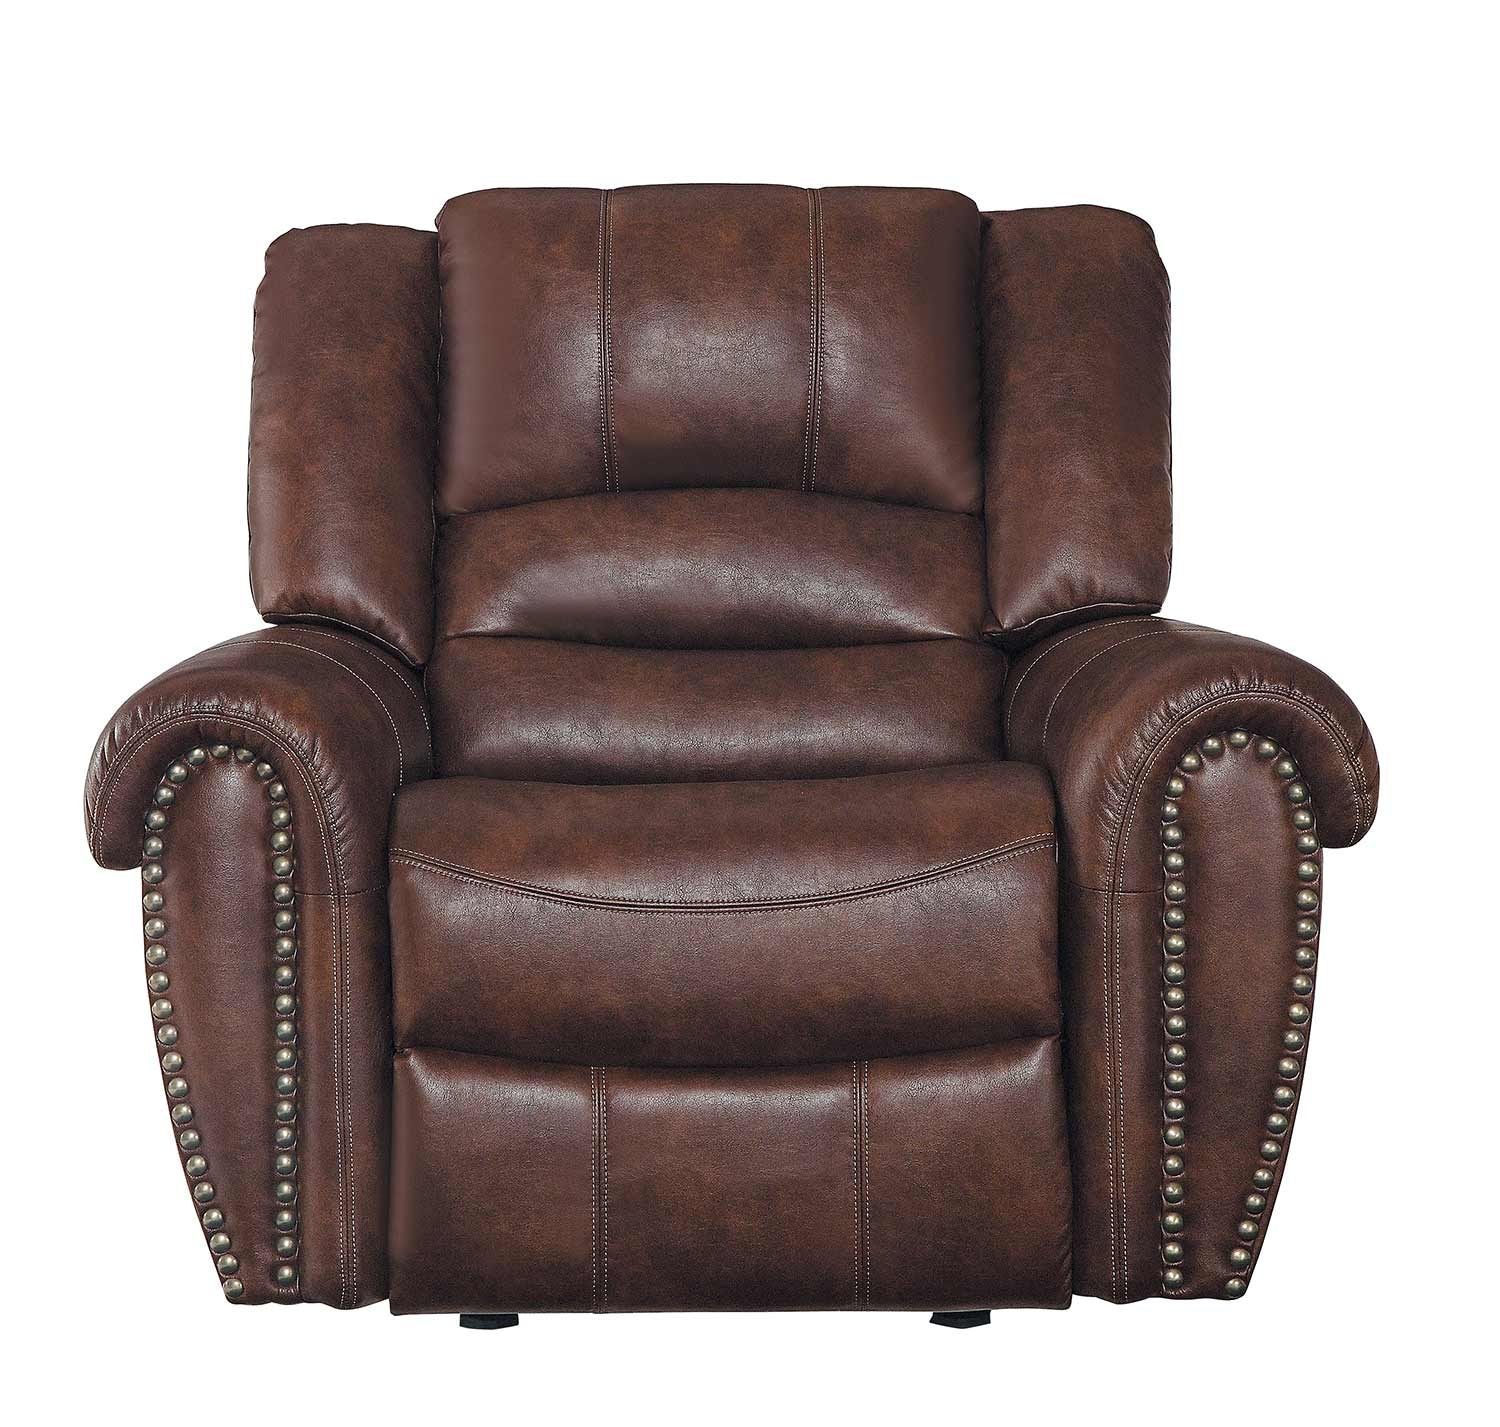 Homelegance Center Hill Reclining Sectional Set – Dark Brown 9668Nsd With Regard To Clyde Saddle 3 Piece Power Reclining Sectionals With Power Headrest & Usb (Image 13 of 25)